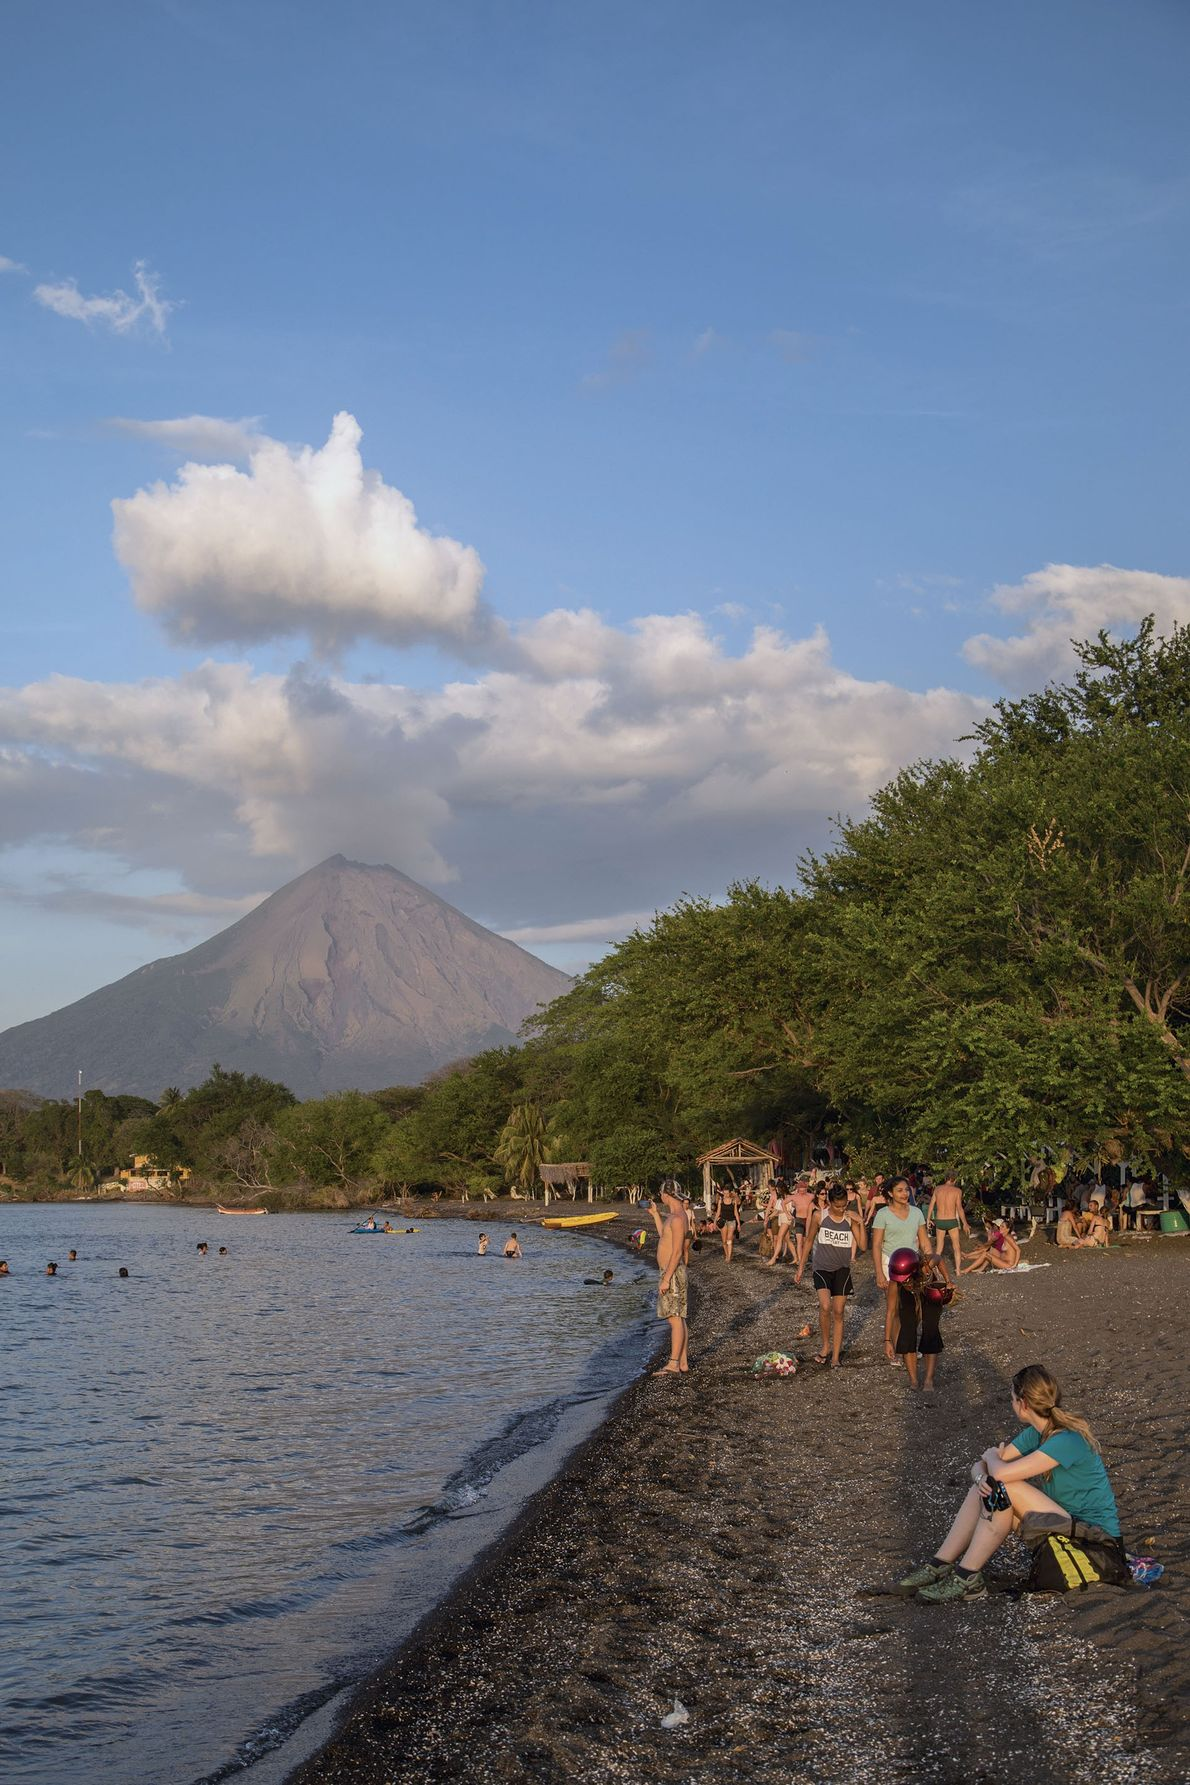 Tourists watch sunset on the dark shores of Ometepe Island